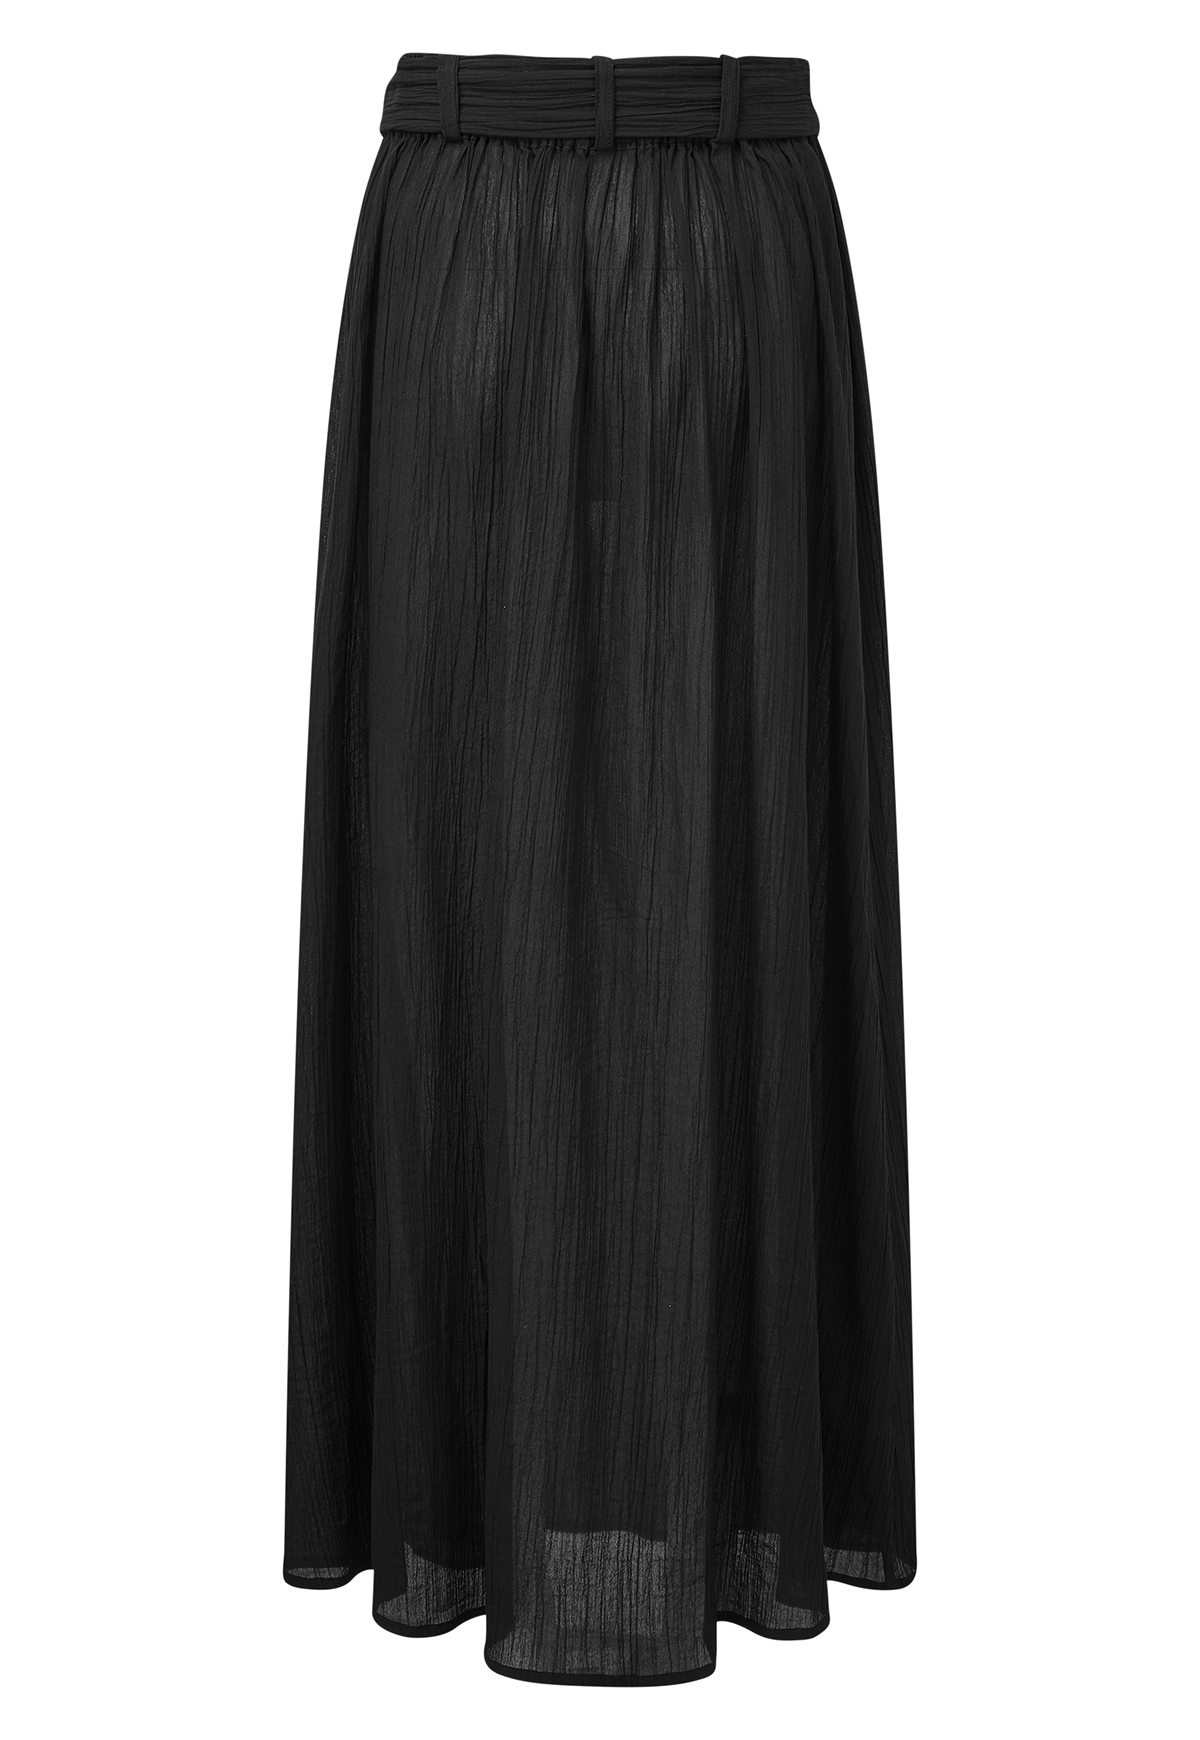 BELTED BLACK COTTON SKIRT